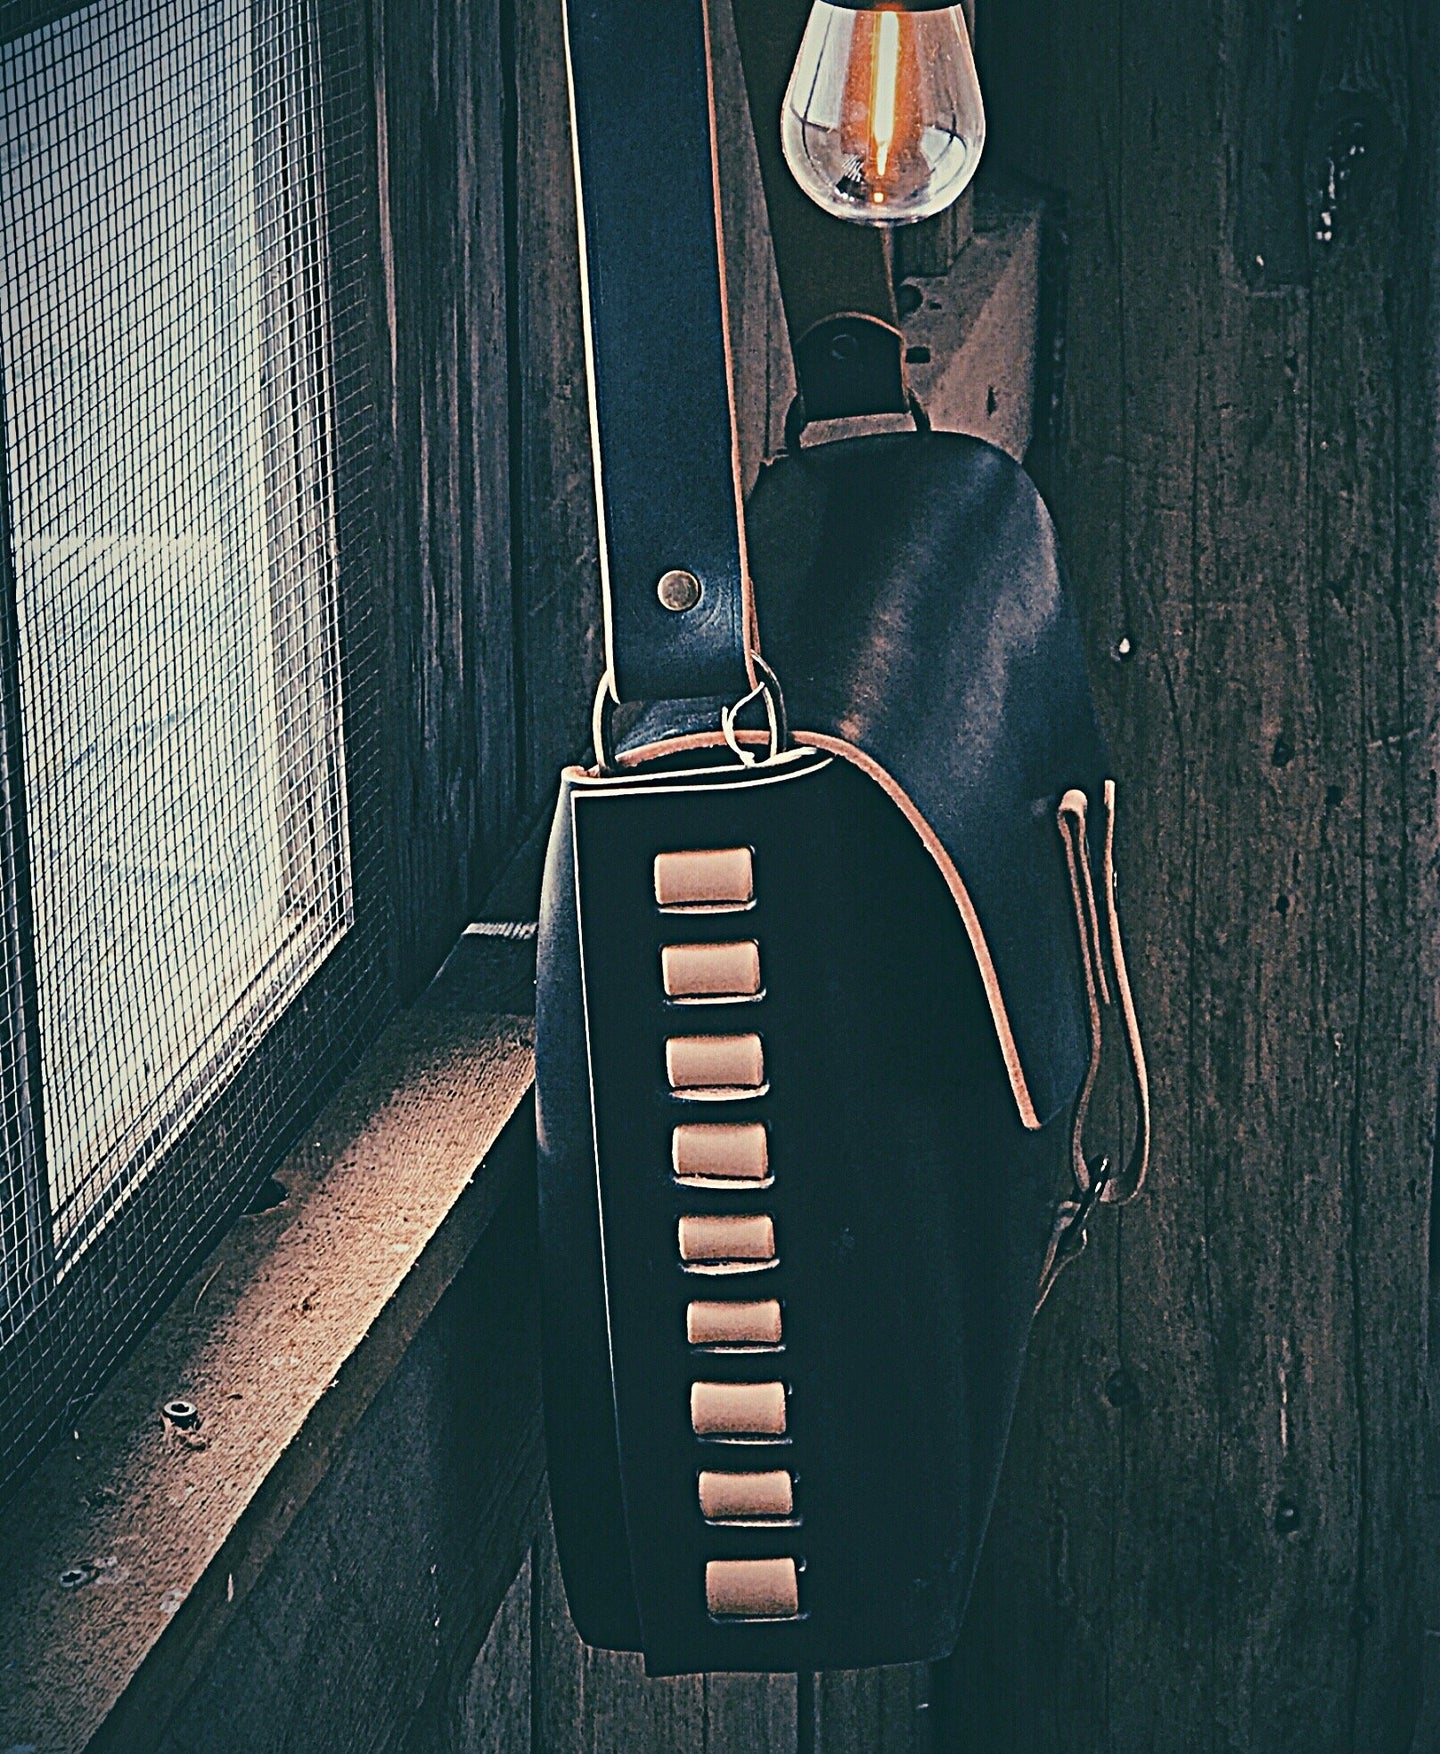 Black and Tan leather Satchel in a wooden barn